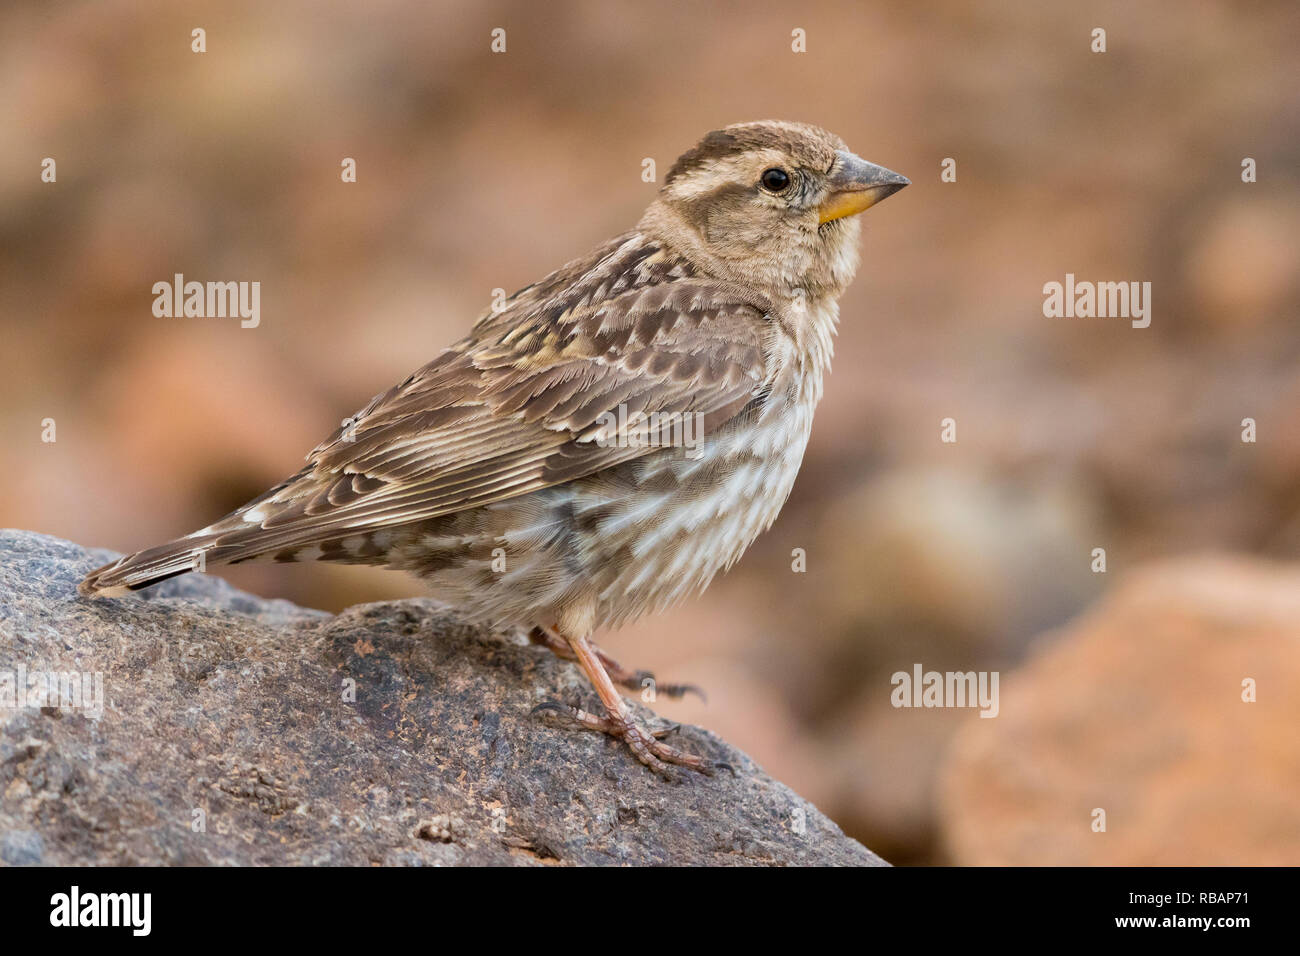 Rock Sparrow (Petronia petronia barbara), side view of an adult standing on a stone - Stock Image